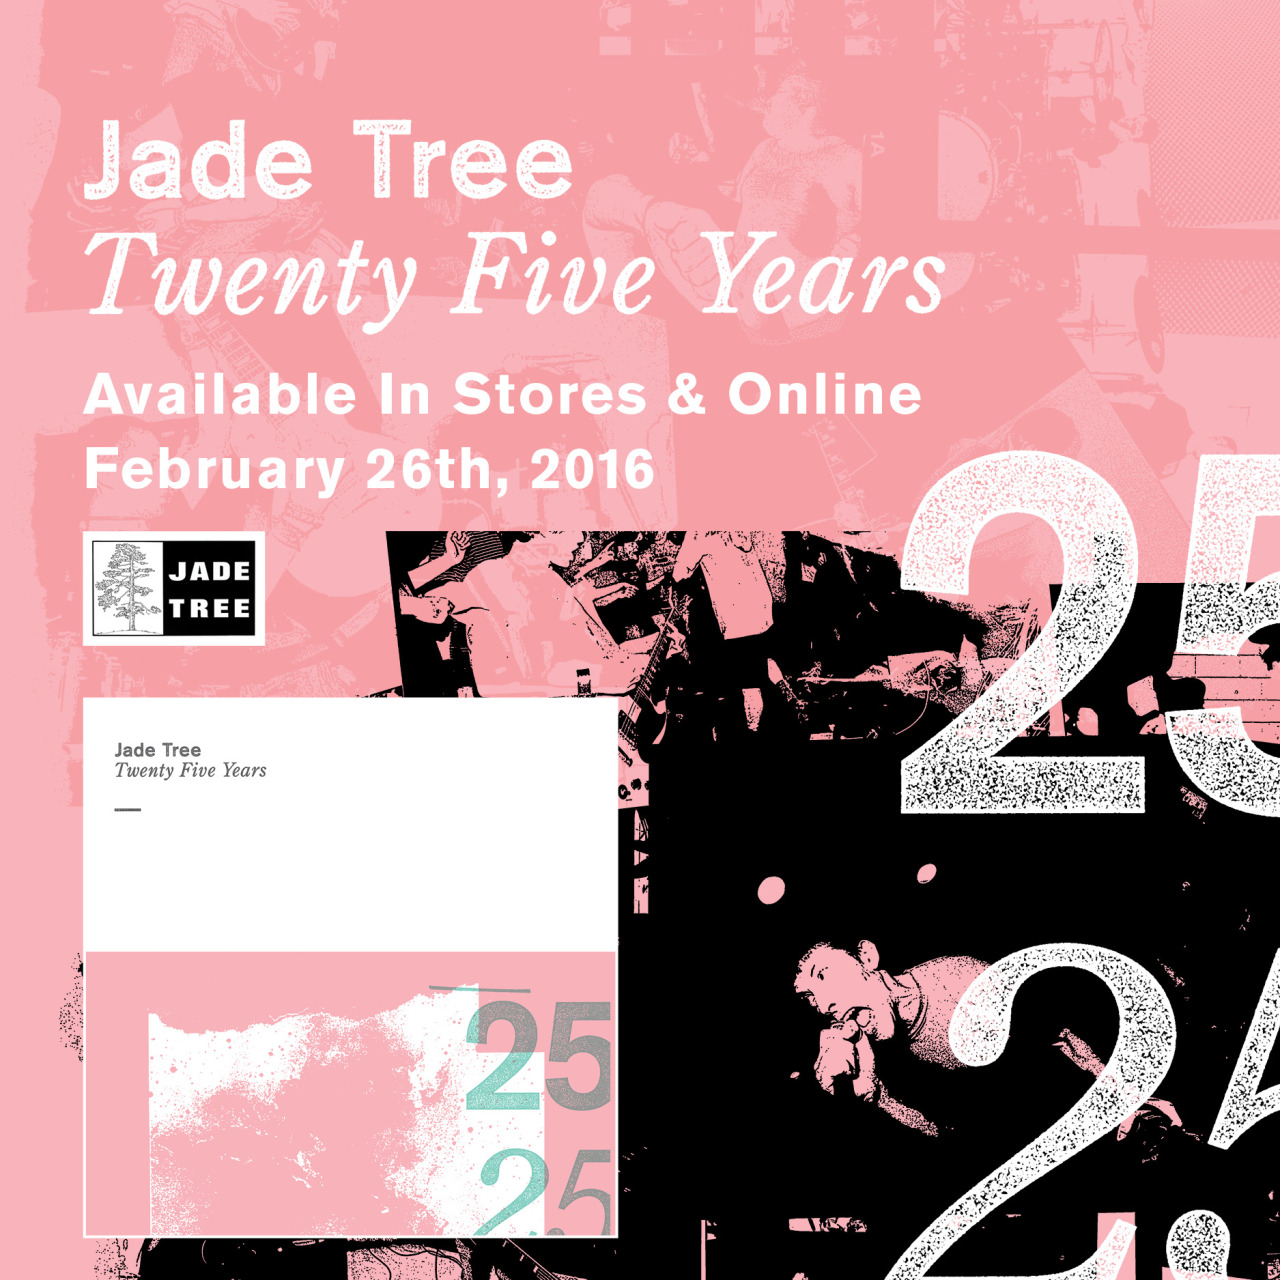 "We turned 25 in 2015 and celebrated all year. We celebrated by signing new artists, and releasing new music from them as well as reissuing crucial records from our back catalog that mkae up the crux of what Jade Tree is and has been over the last 2 decades.  We continue to celebrate our 25 years with our first release of the year, aptly titled, Twenty Five Years - a compilation LP that showcases 13 tracks from 13 artists who brought Jade Tree to where it is today. Pre-orders will be available for purchase this Friday, January 15th.   Be on the look out for exclusive pre-order items and get very excited!      Tracklisting:  The Promise Ring - ""Is This Thing On?""  Pedro The Lion - ""Rapture"" Strike Anywhere - ""Infrared"" Denali - ""The Instinct"" Kid Dynamite - ""News At 11"" Joan of Arc - ""Post-Coitus Rock"" From Ashes Rise - ""Reaction"" Fucked Up - ""David Comes to Life"" Swiz - ""Cakewalk"" Lifetime - ""Daneurysm"" Cap'n Jazz - ""Little League"" Paint It Black - ""Exit Wounds"" Jets To Brazil - ""I Typed For Miles""   Pressing info: 1000 Black (record stores only) 250 Coke Bottle w/ Pink Splatter"